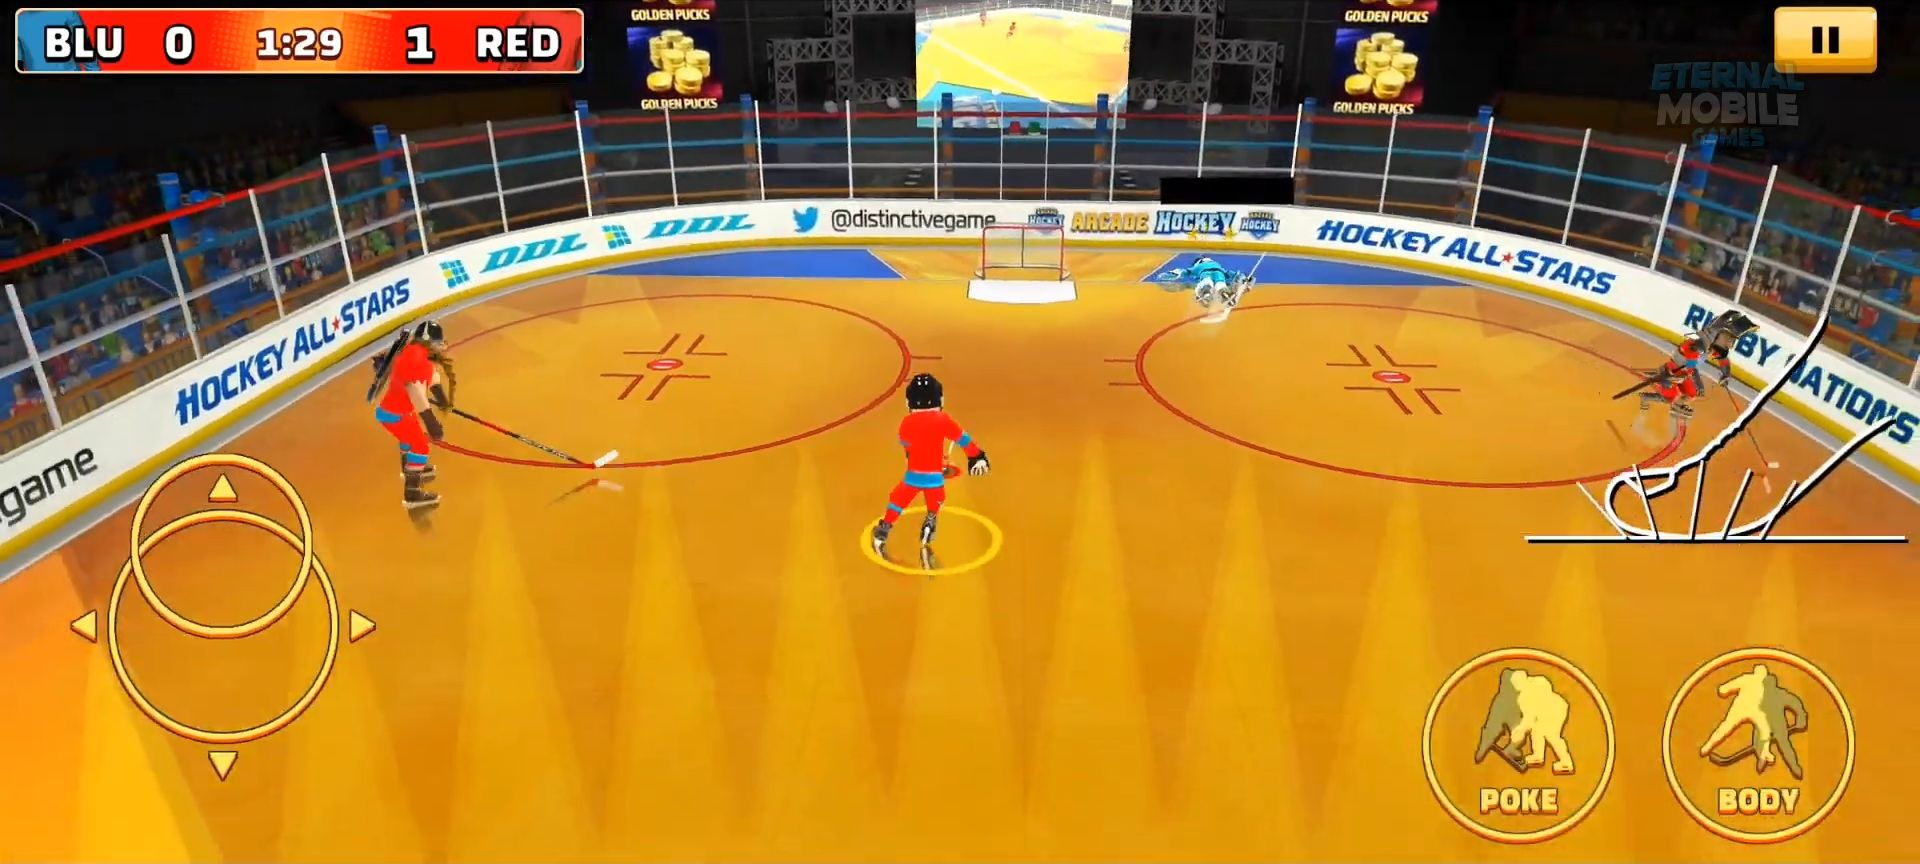 Arcade Hockey 21 for Android